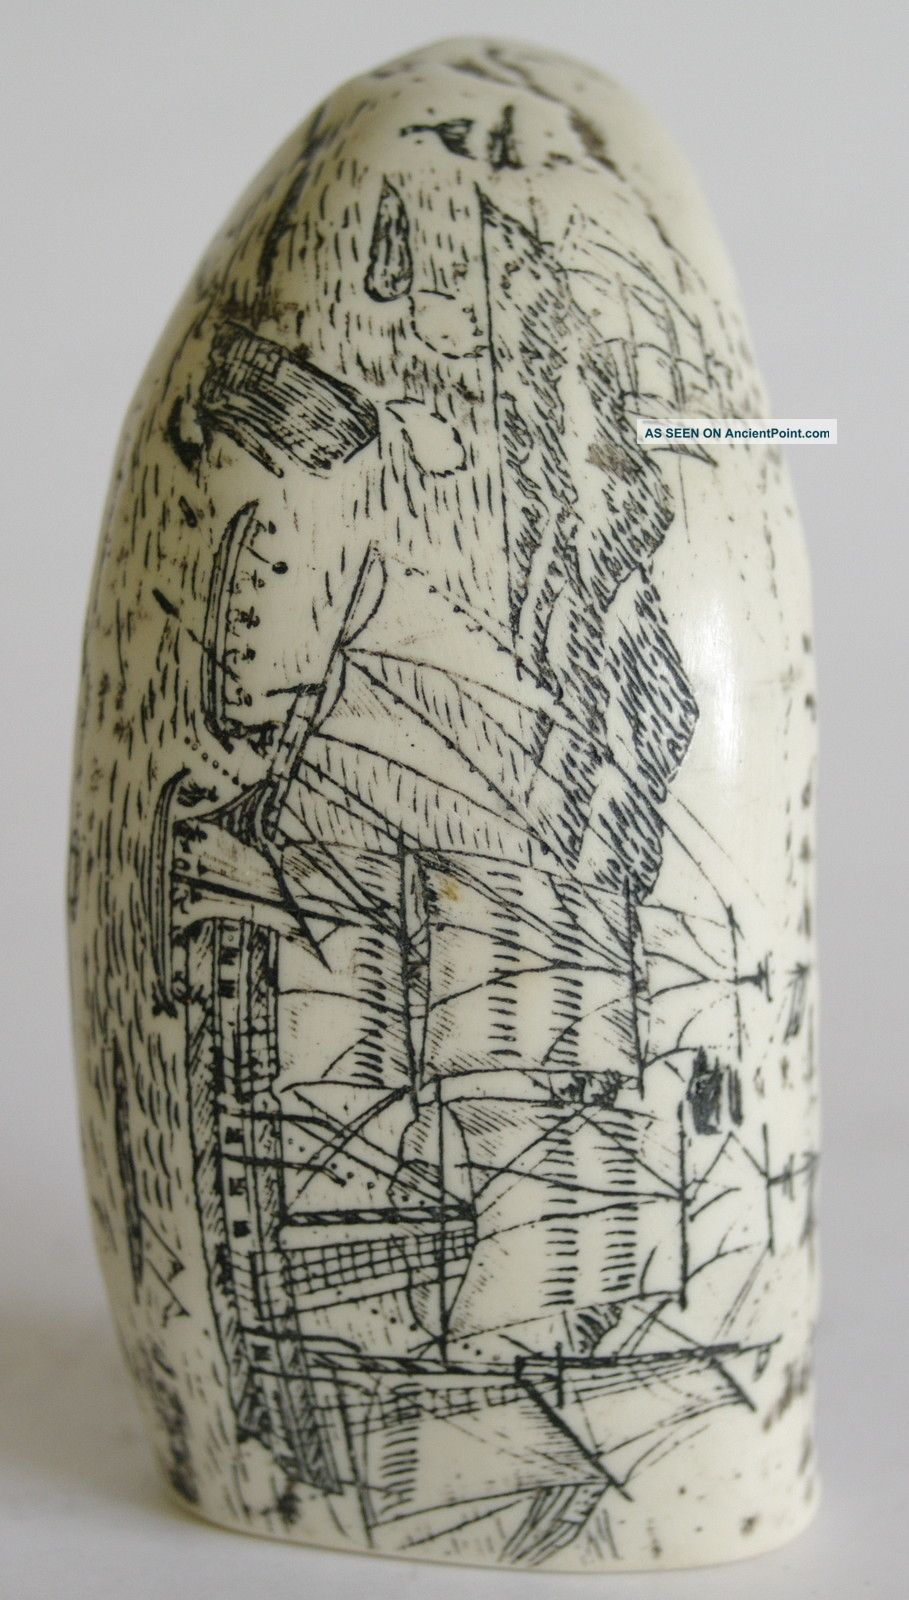 As New Imitation Scrimshaw Whale Tooth - Whaling Scene - Vgc Other photo